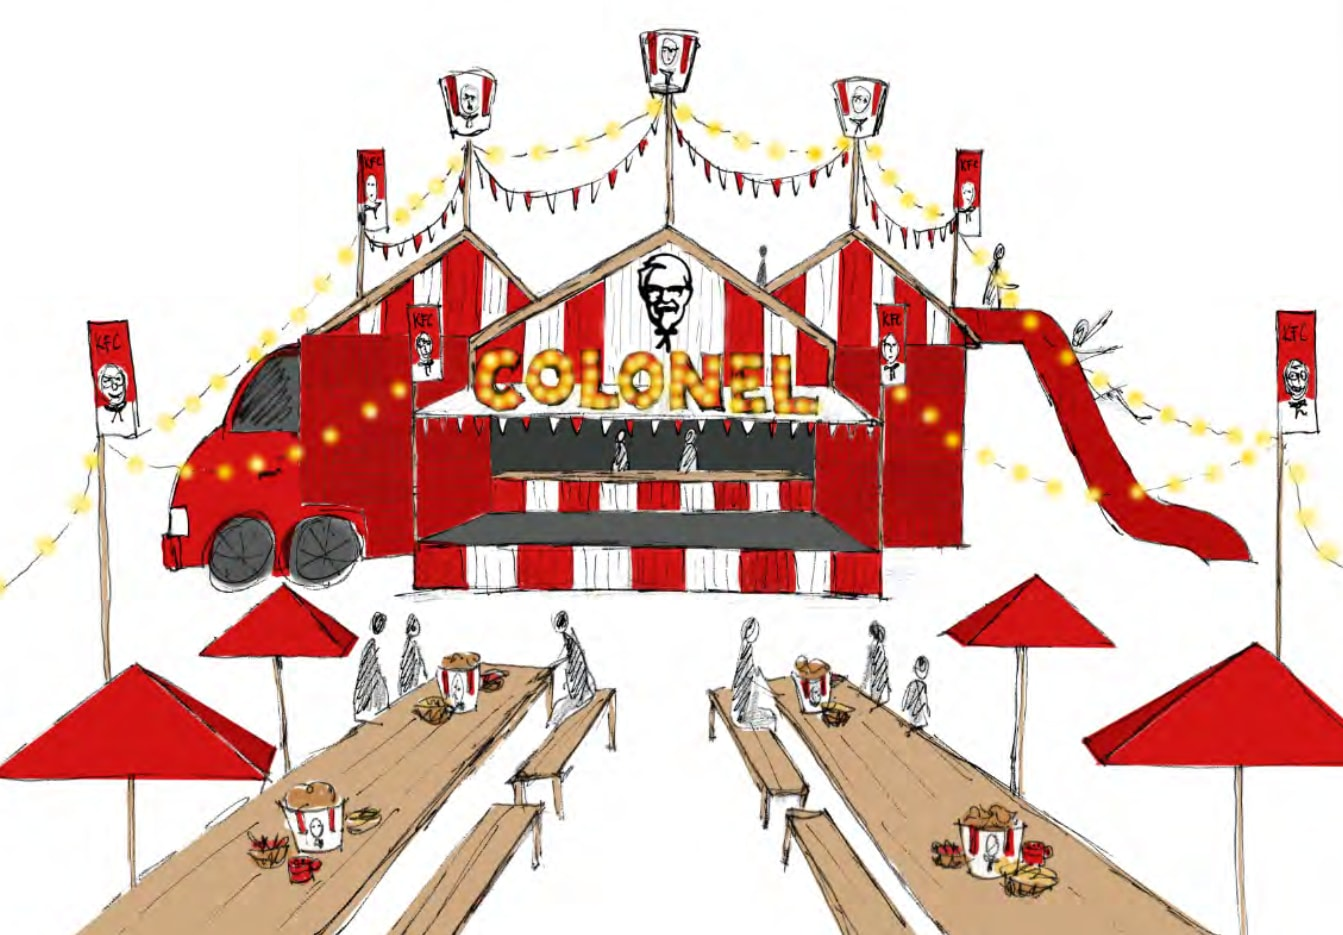 Artists impression of 'The Colonel's' camp which will debut at the Big Red Bash.